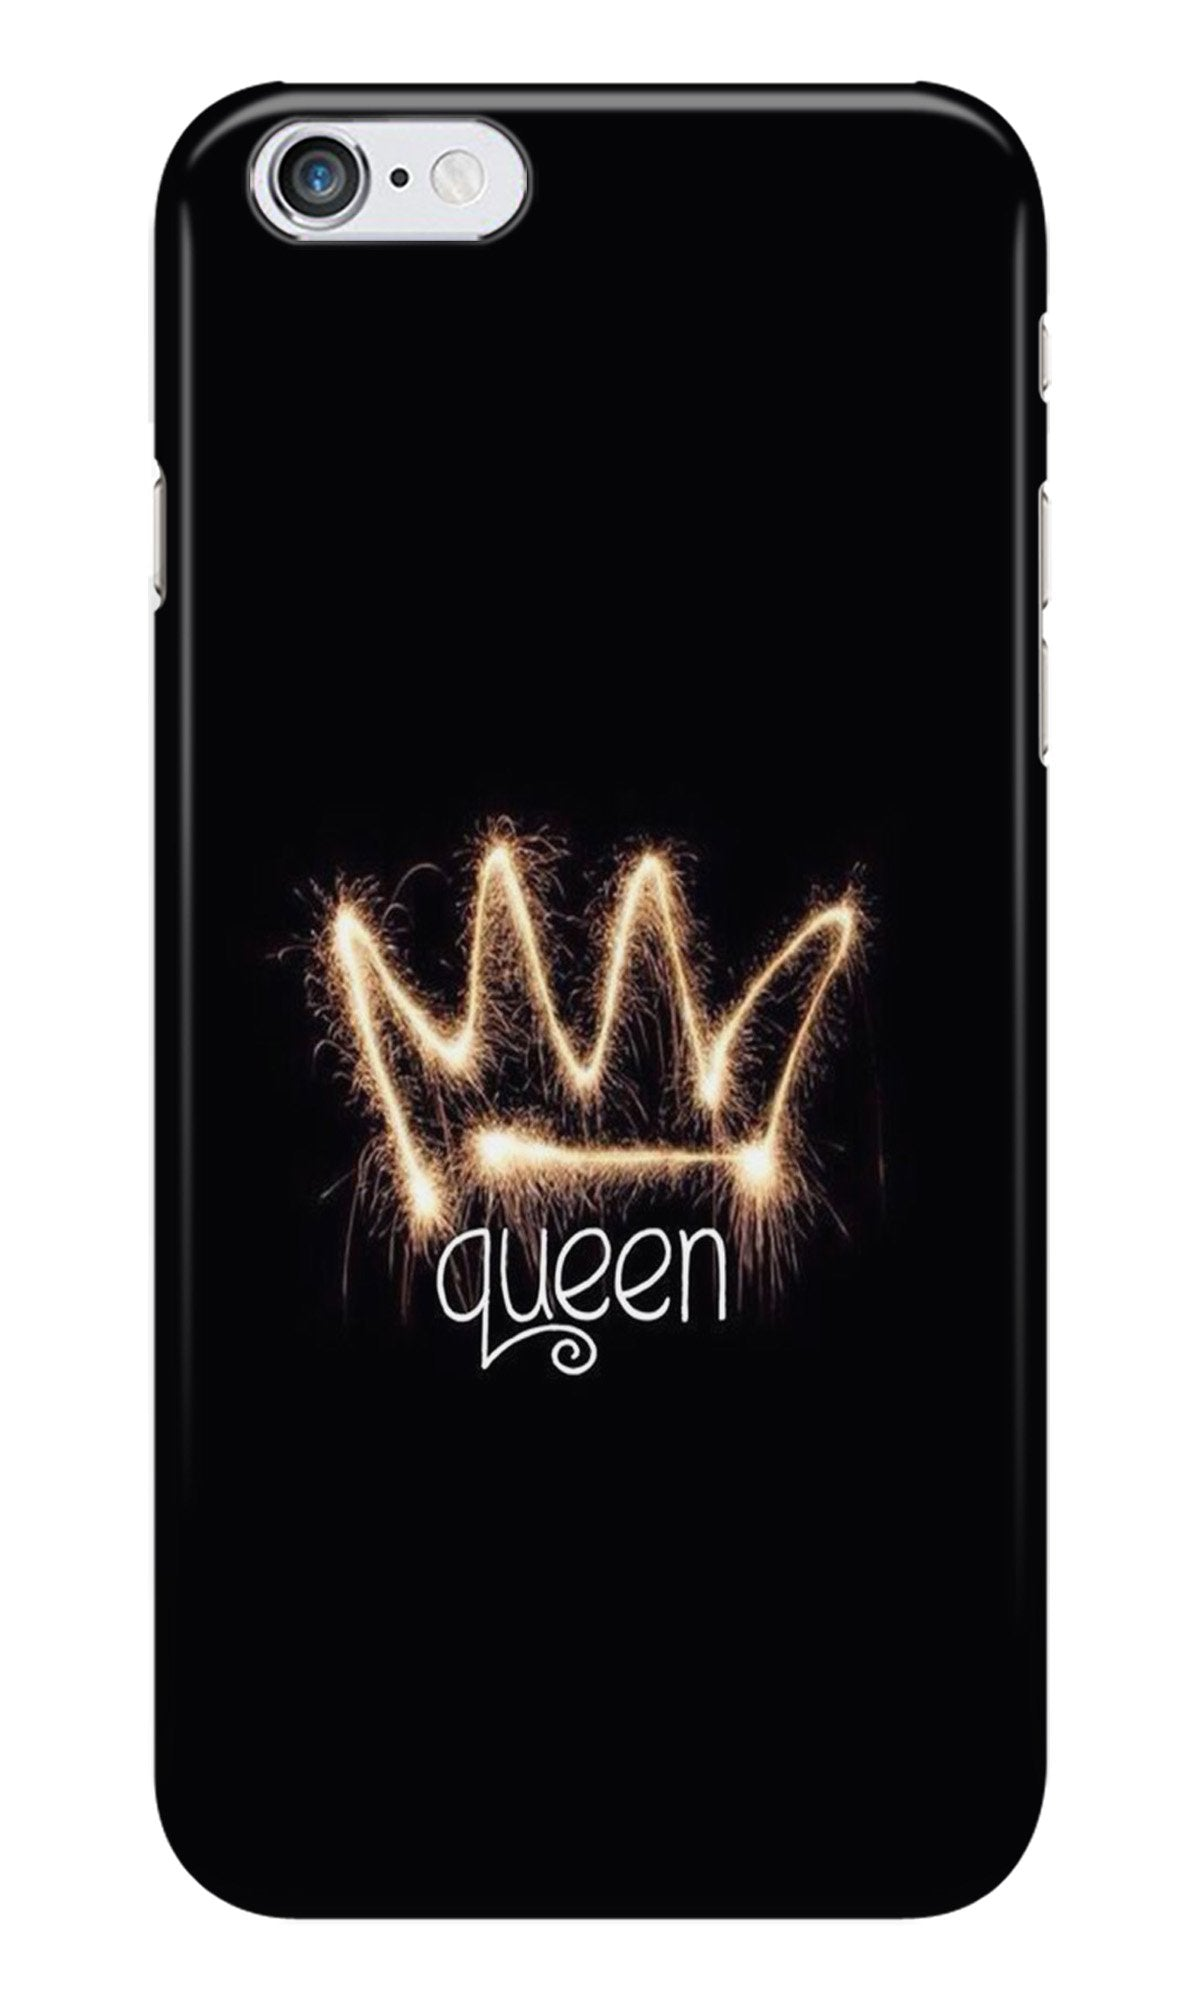 Queen Case for Iphone 6/6S (Design No. 270)